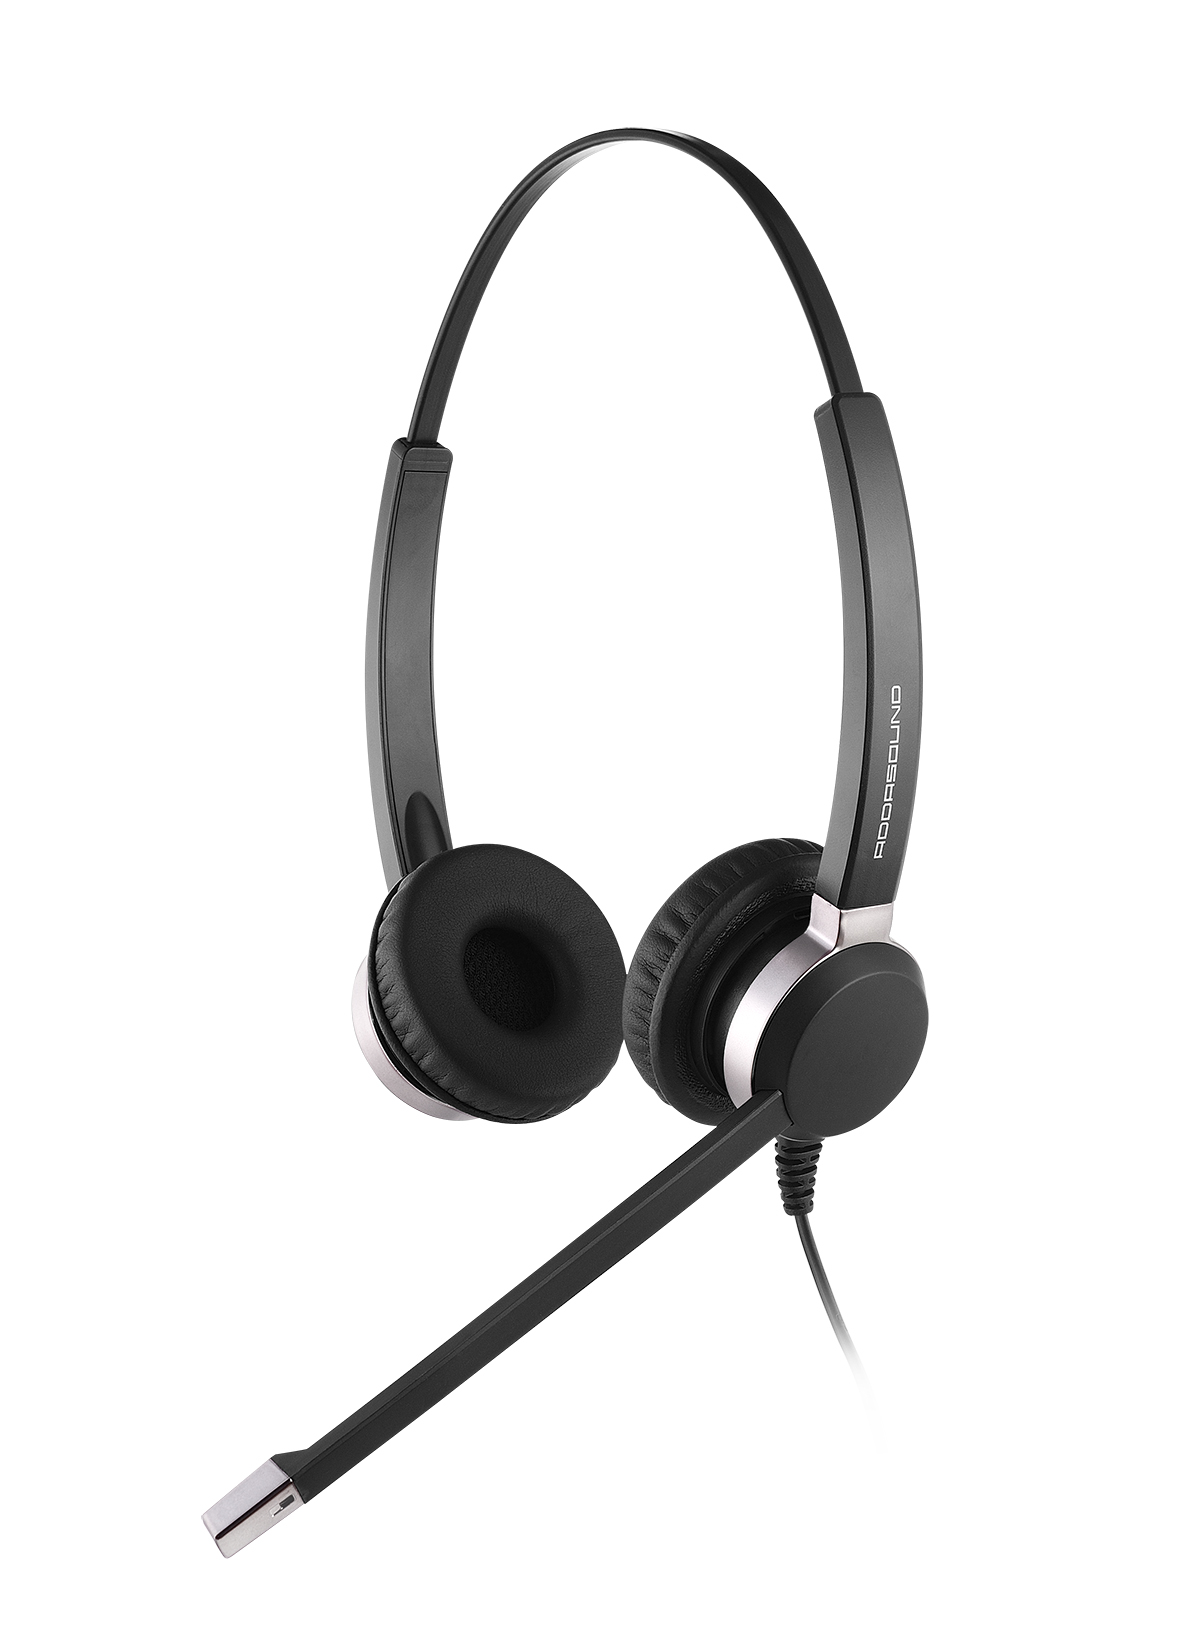 Crystal 2821/2822 Call Center Headsets with Noise Cancling